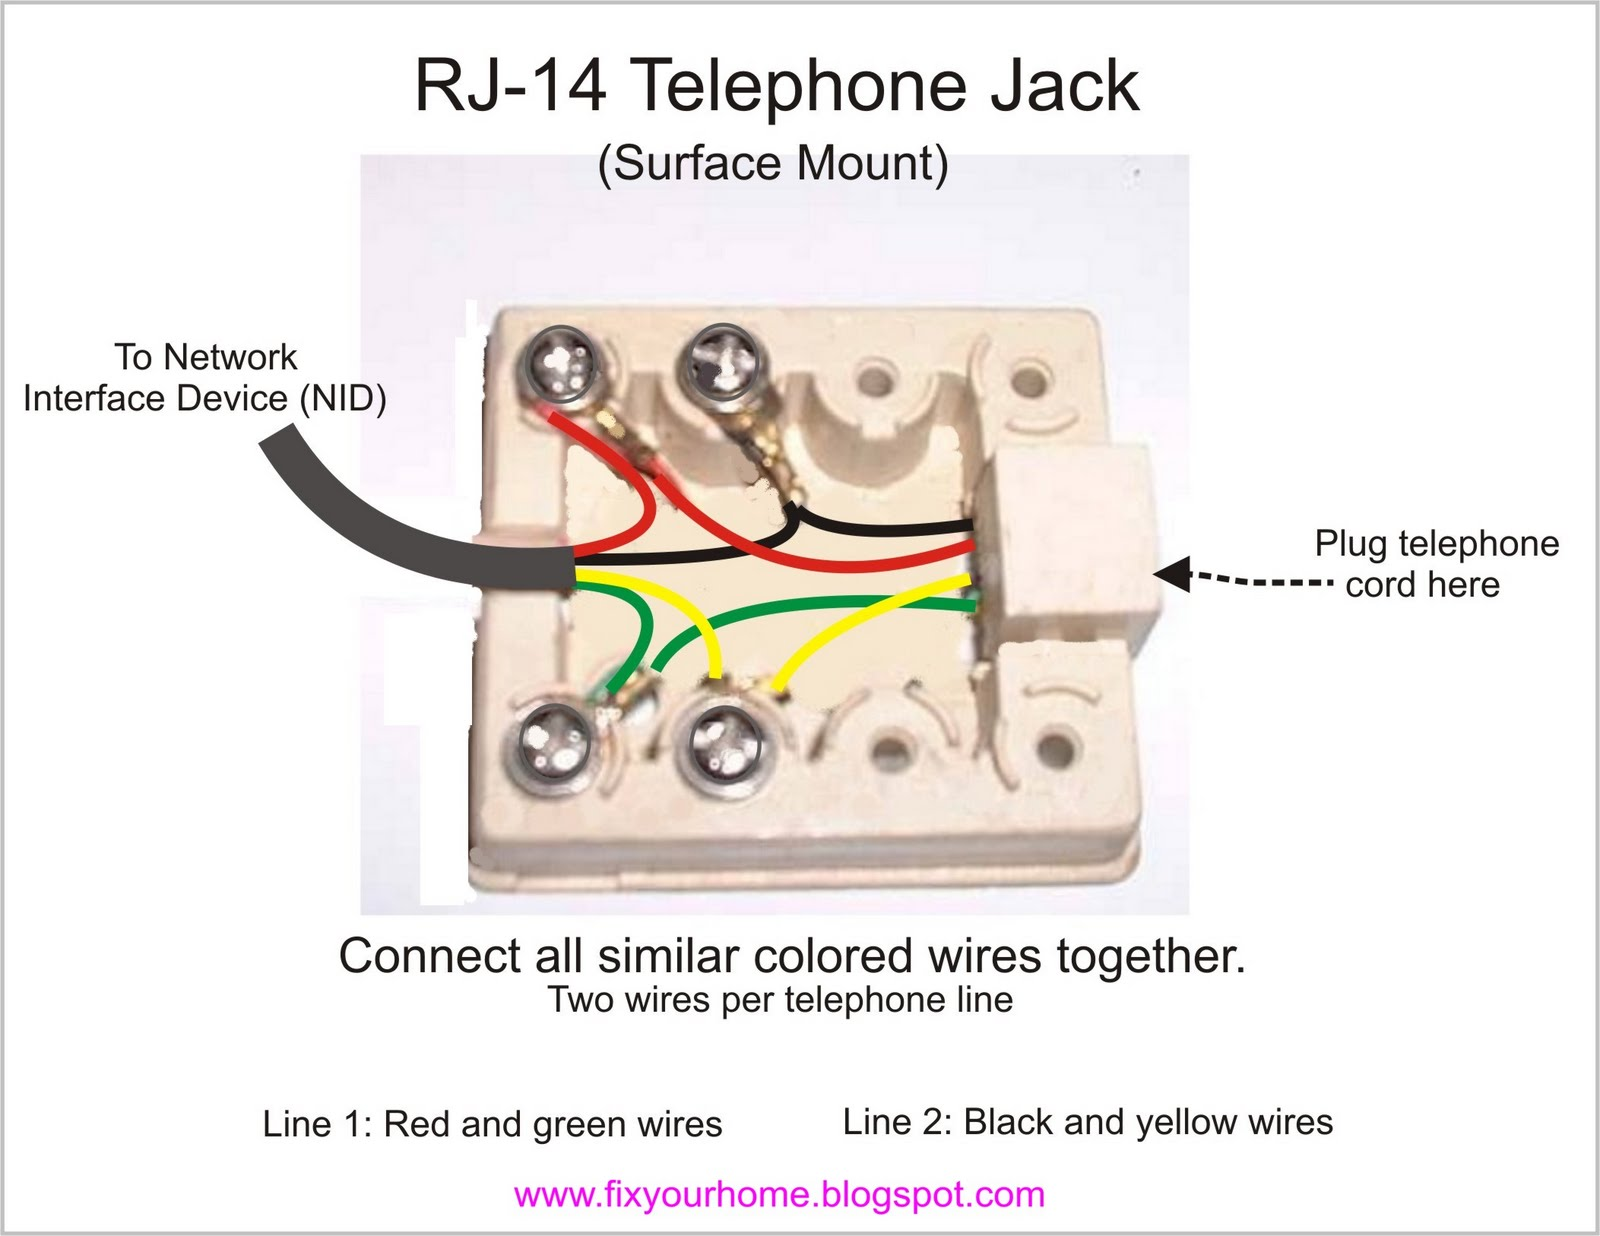 Home Phone Wiring Diagram Using Cat5 Cable : Fix your home